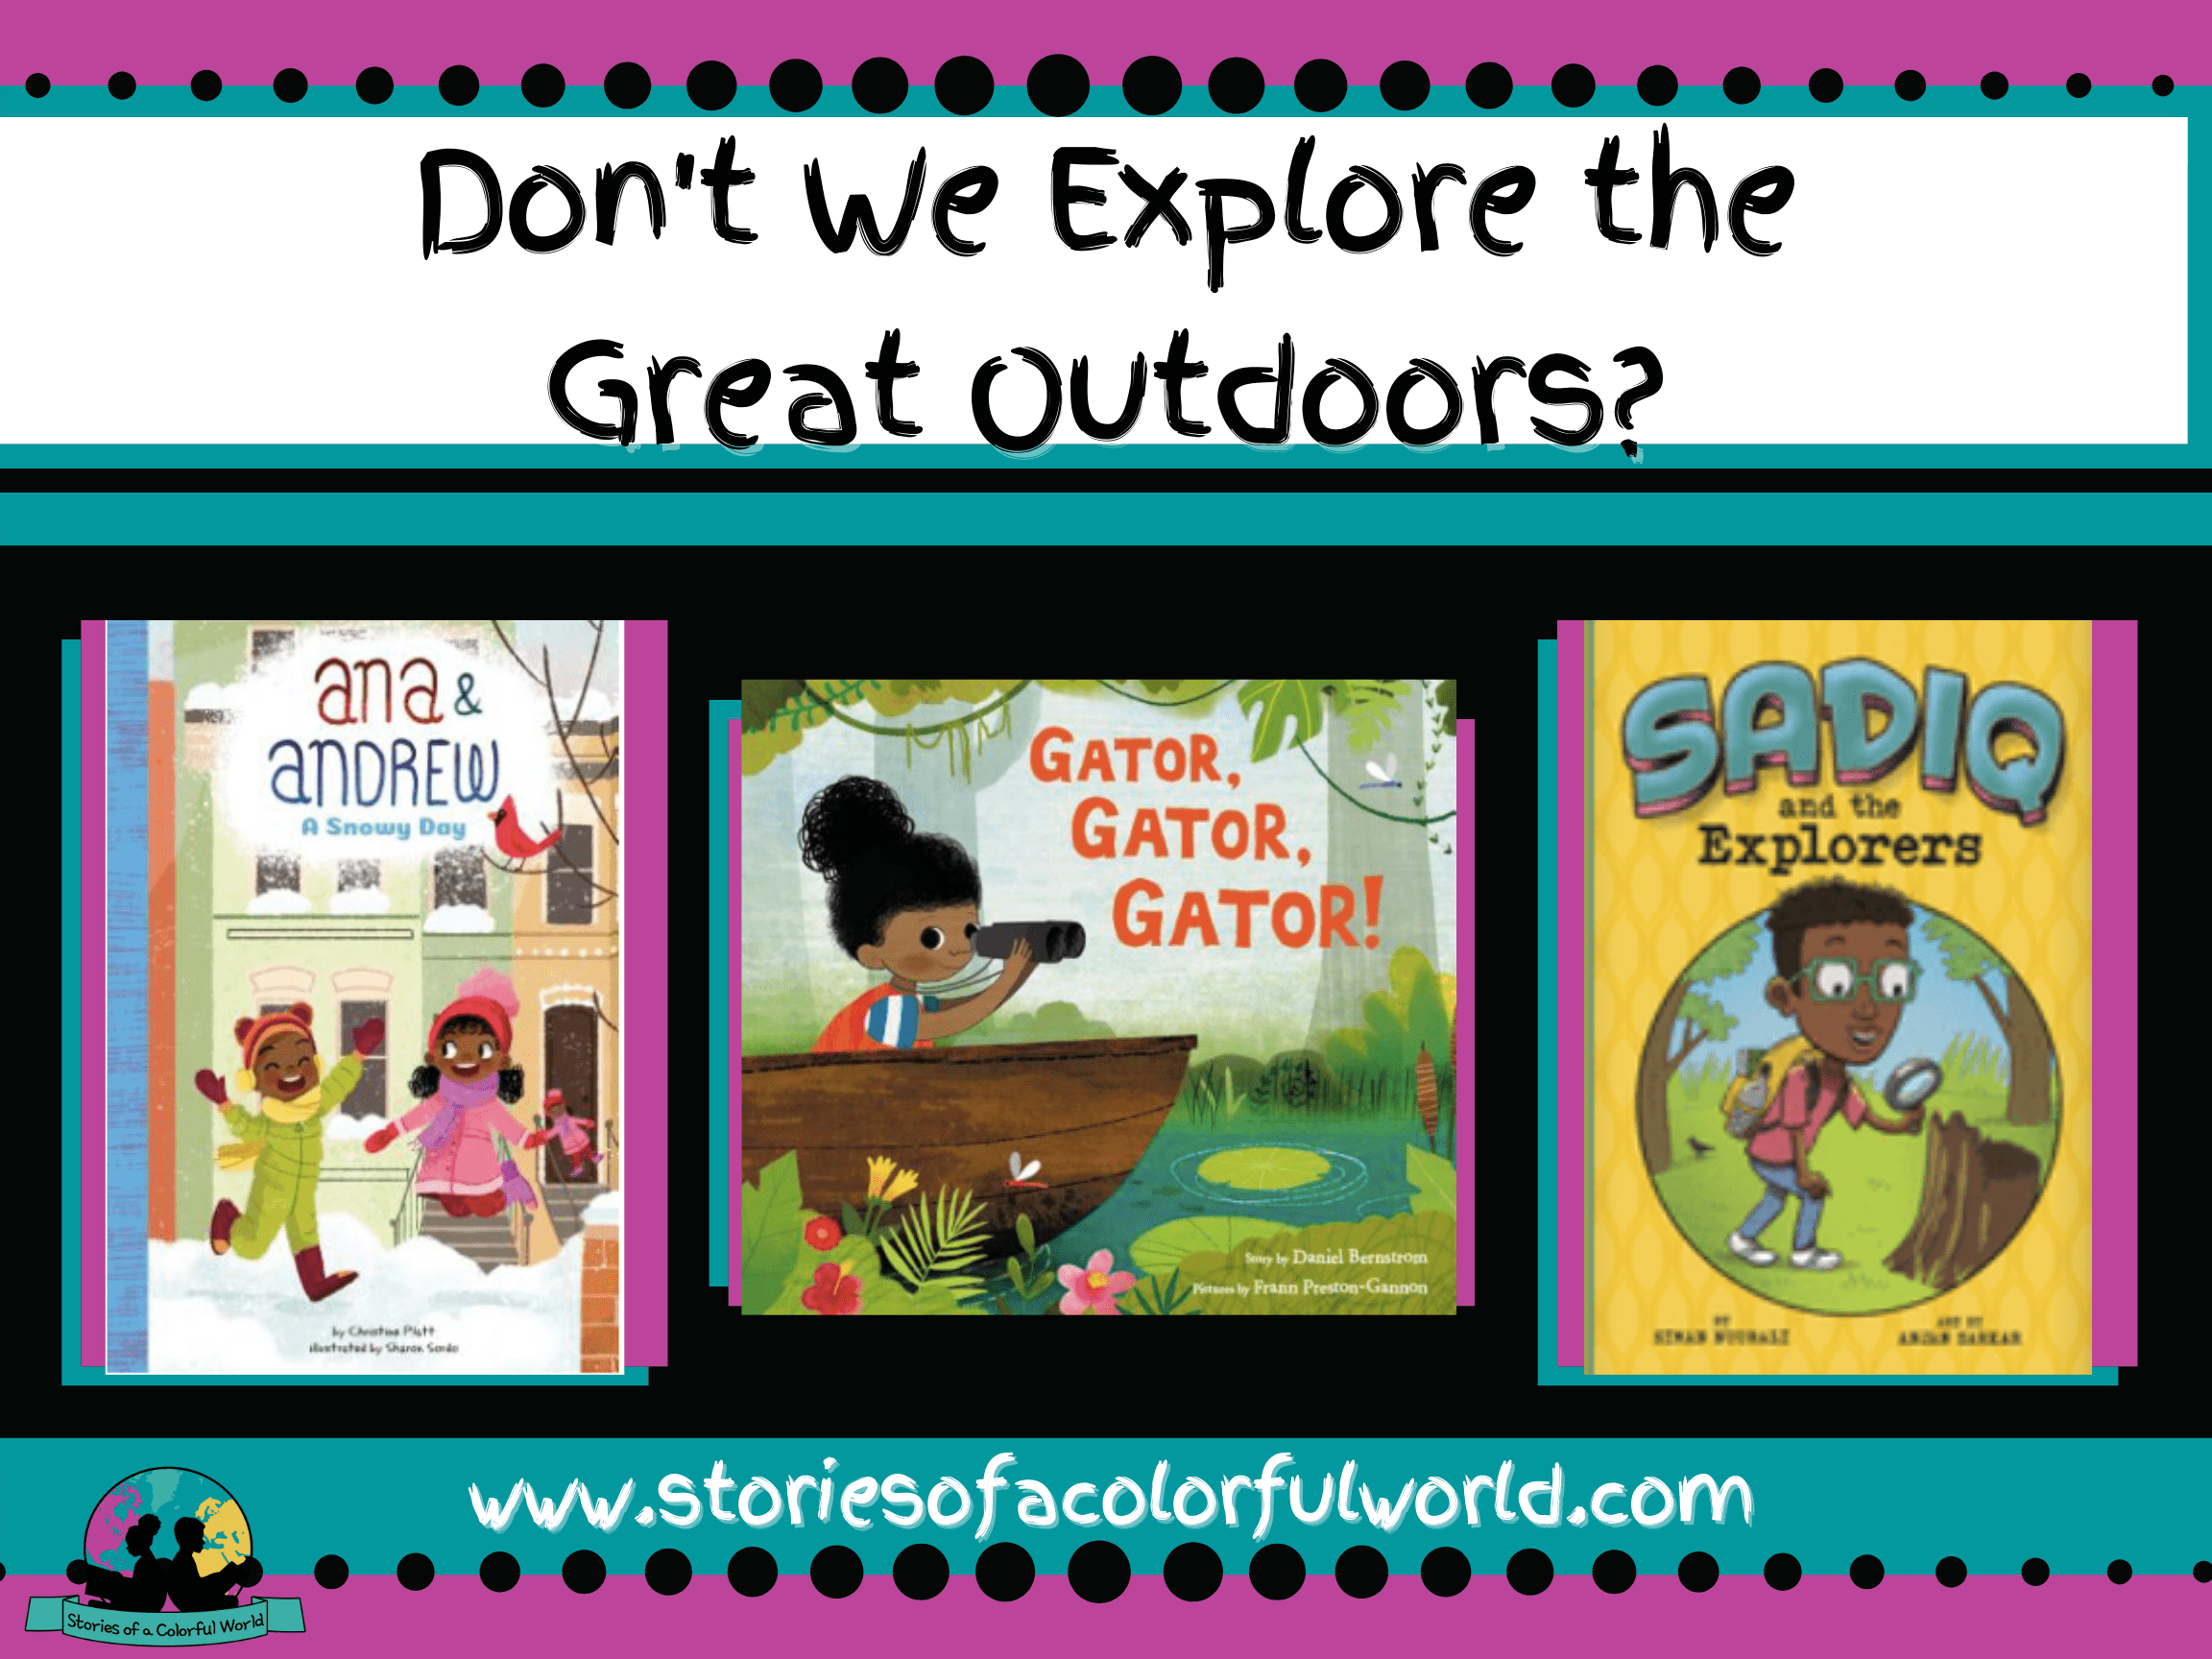 Don't We Explore the Great Outdoors?